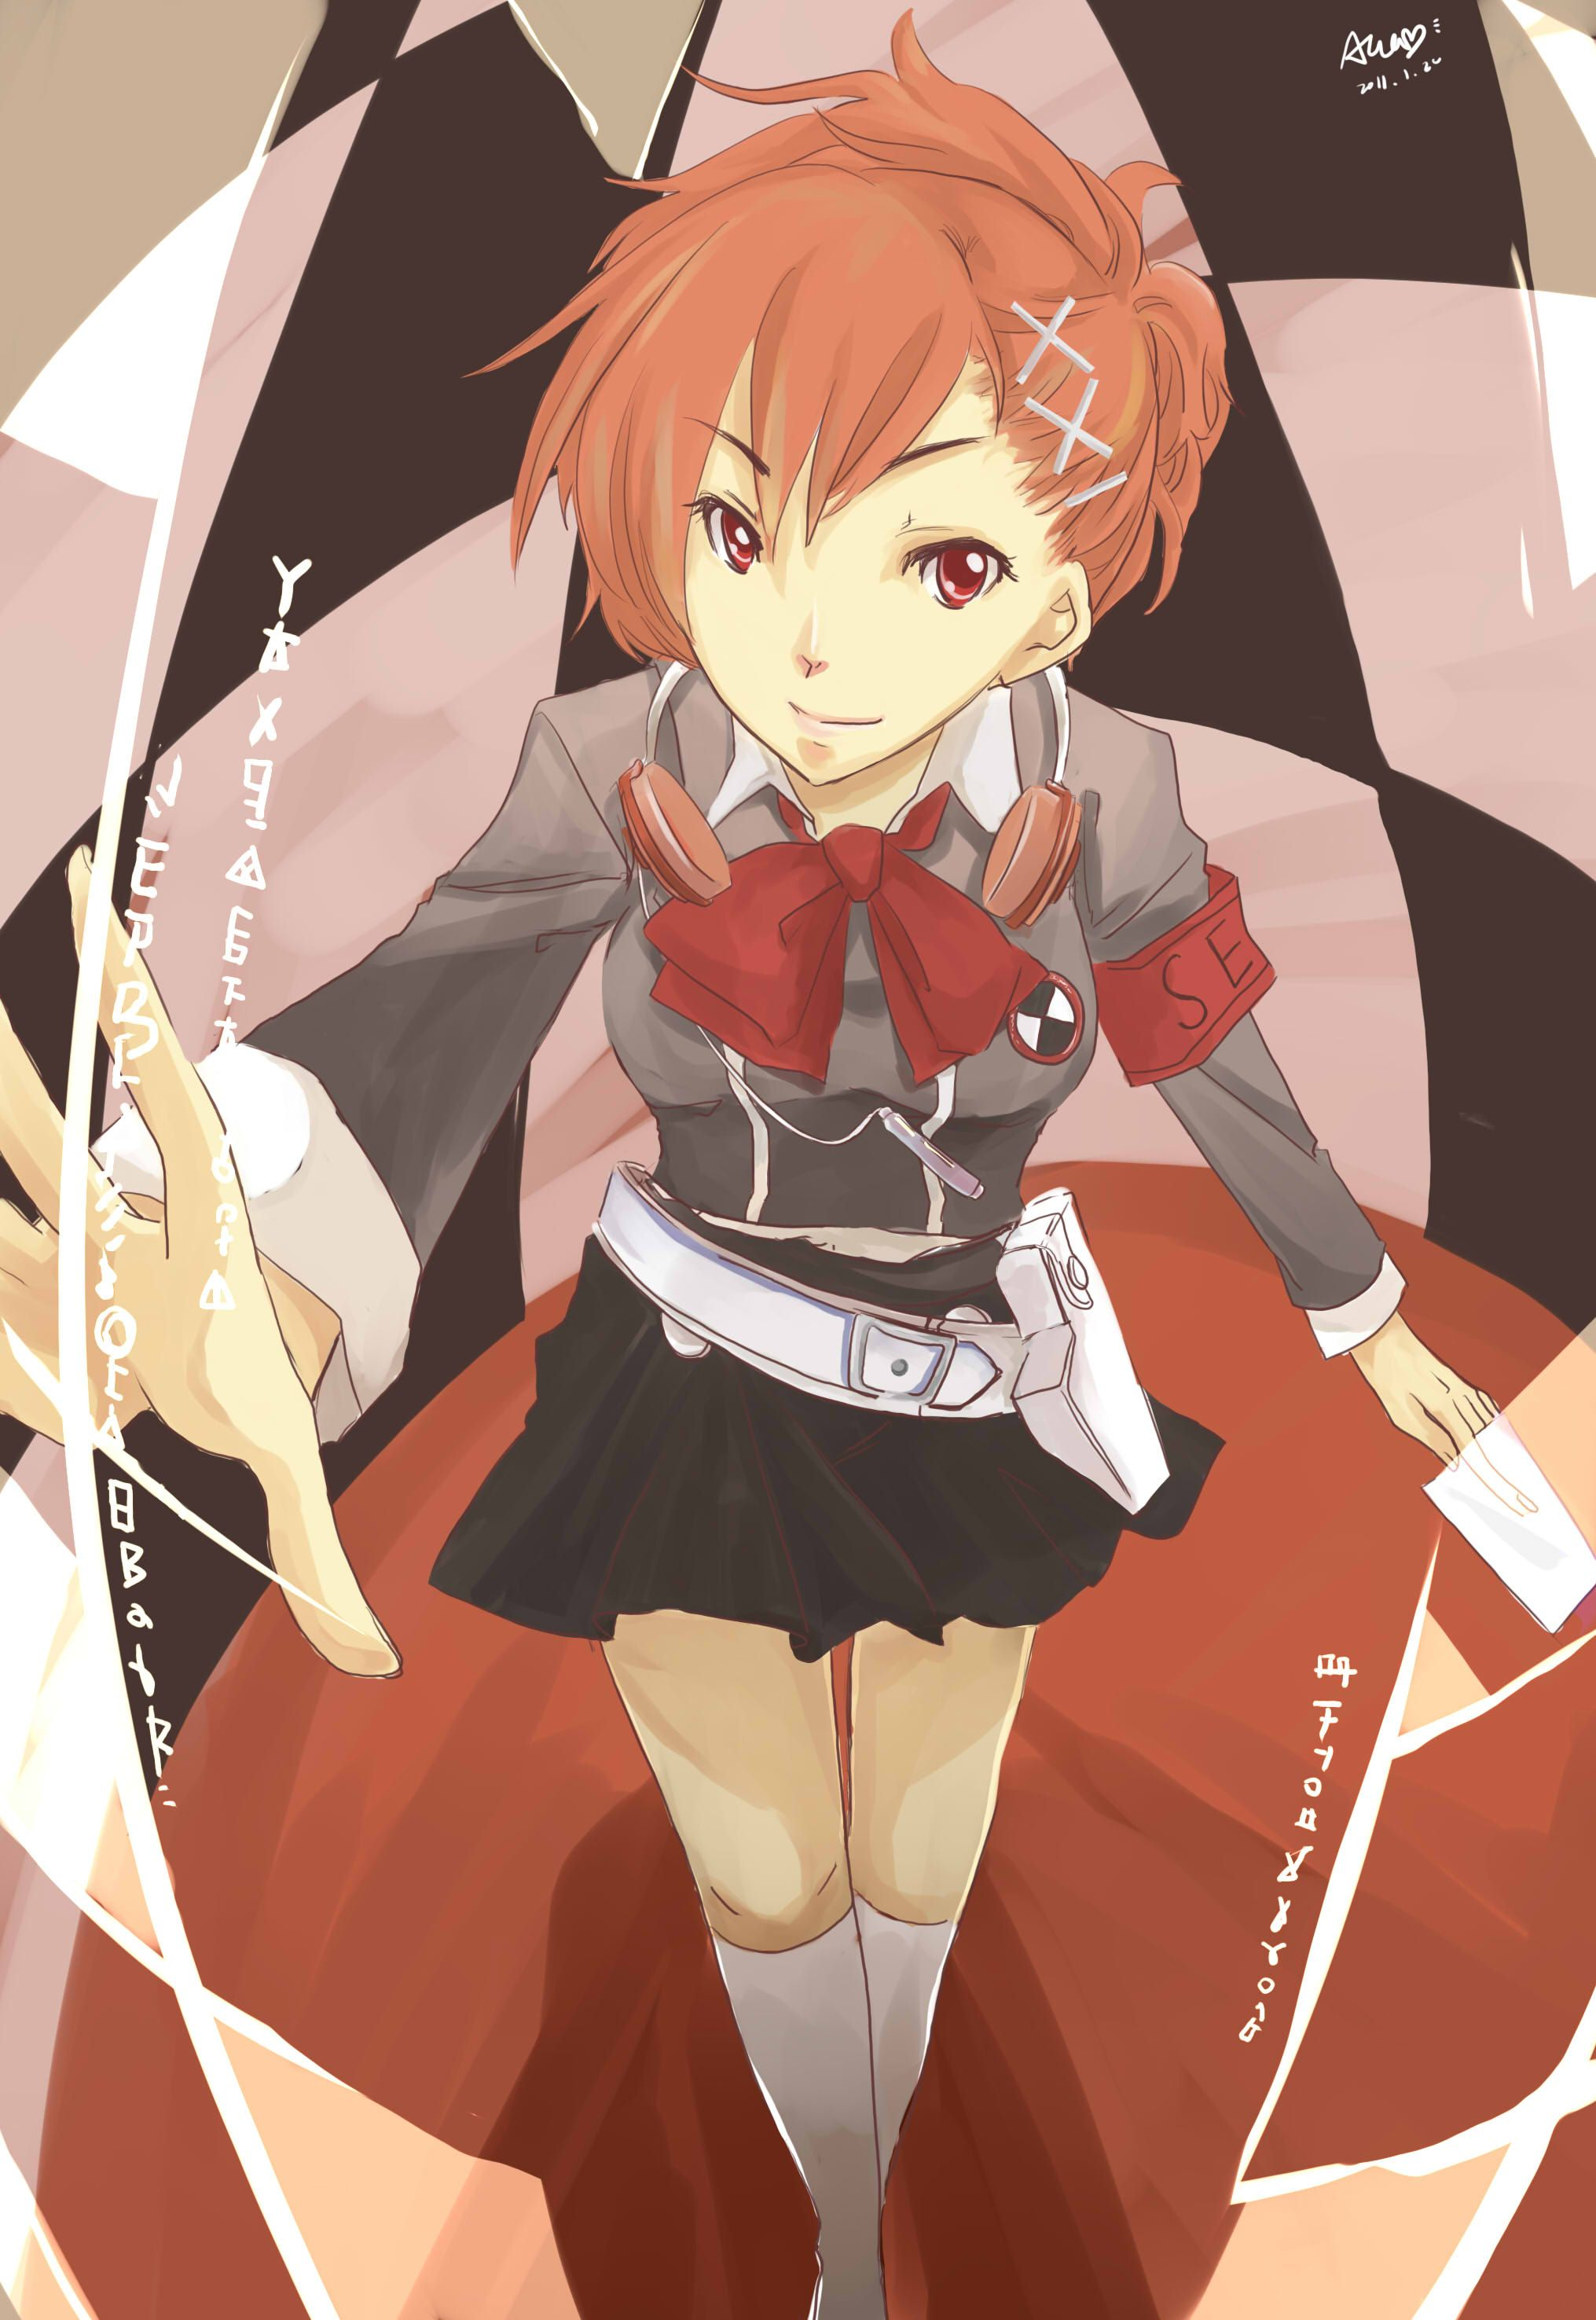 Persona 3 female protagonist dating service